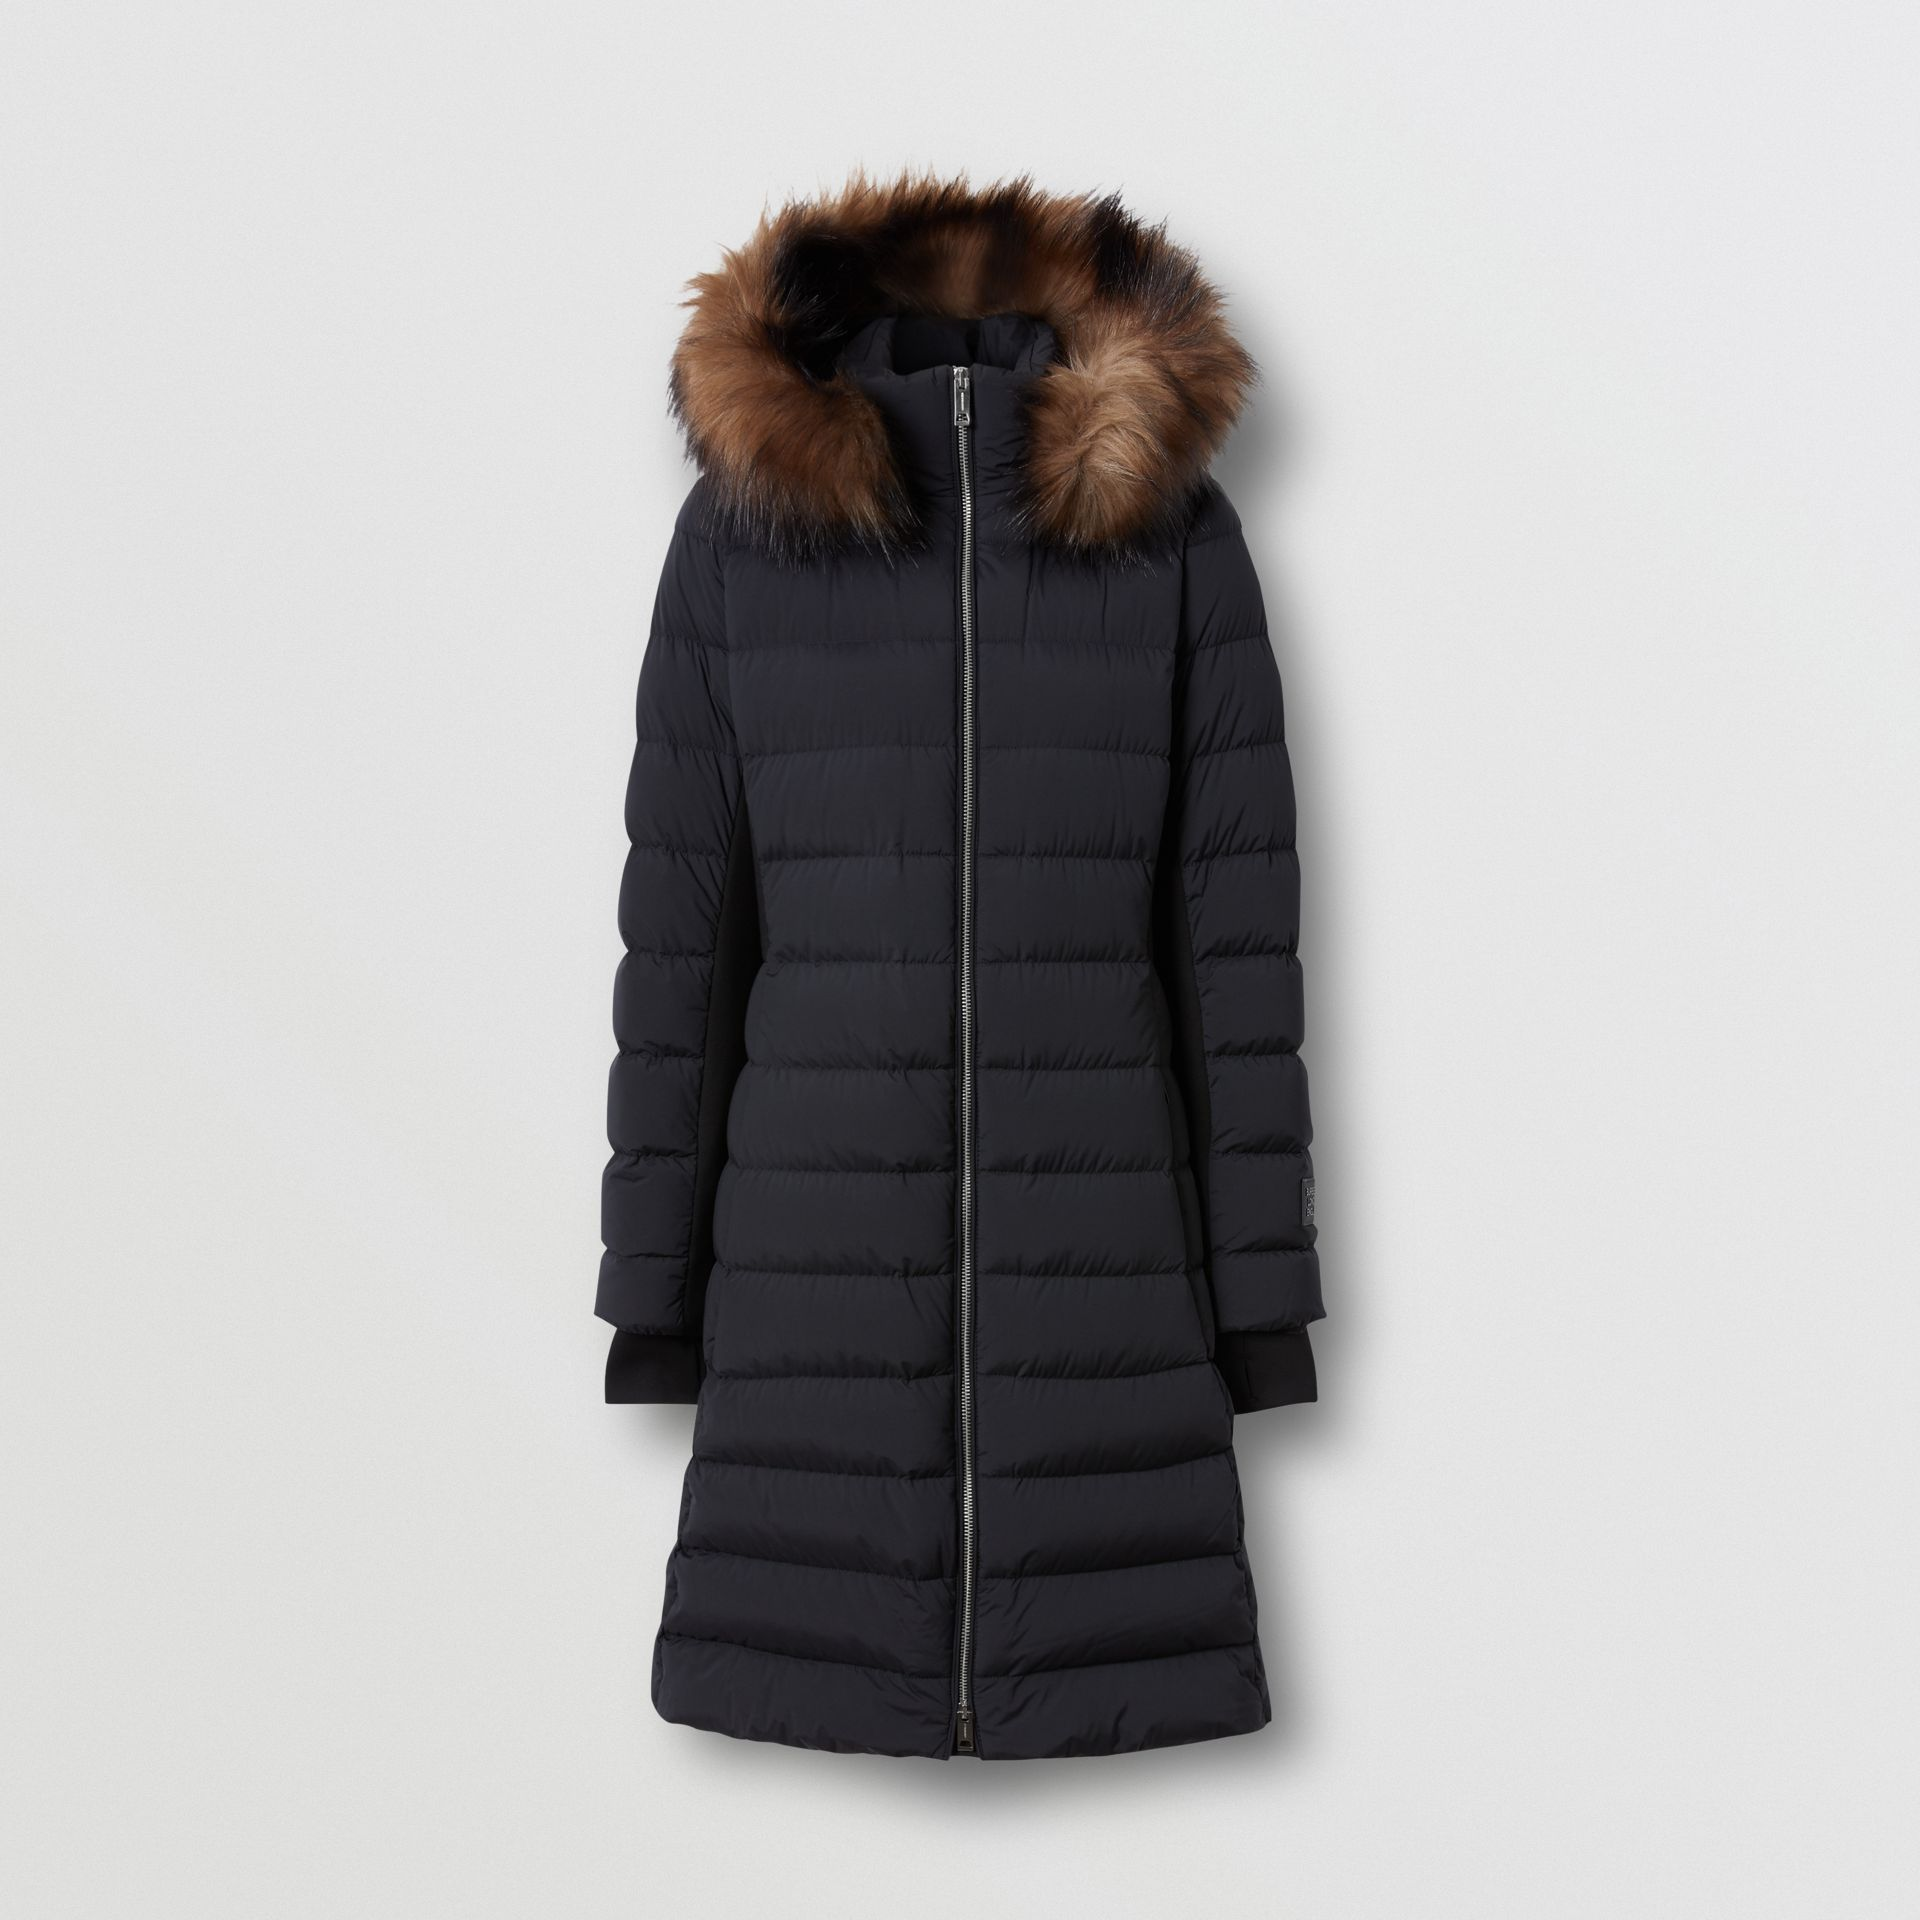 Detachable Faux Fur Trim Hooded Puffer Coat in Black - Women | Burberry United Kingdom - gallery image 2